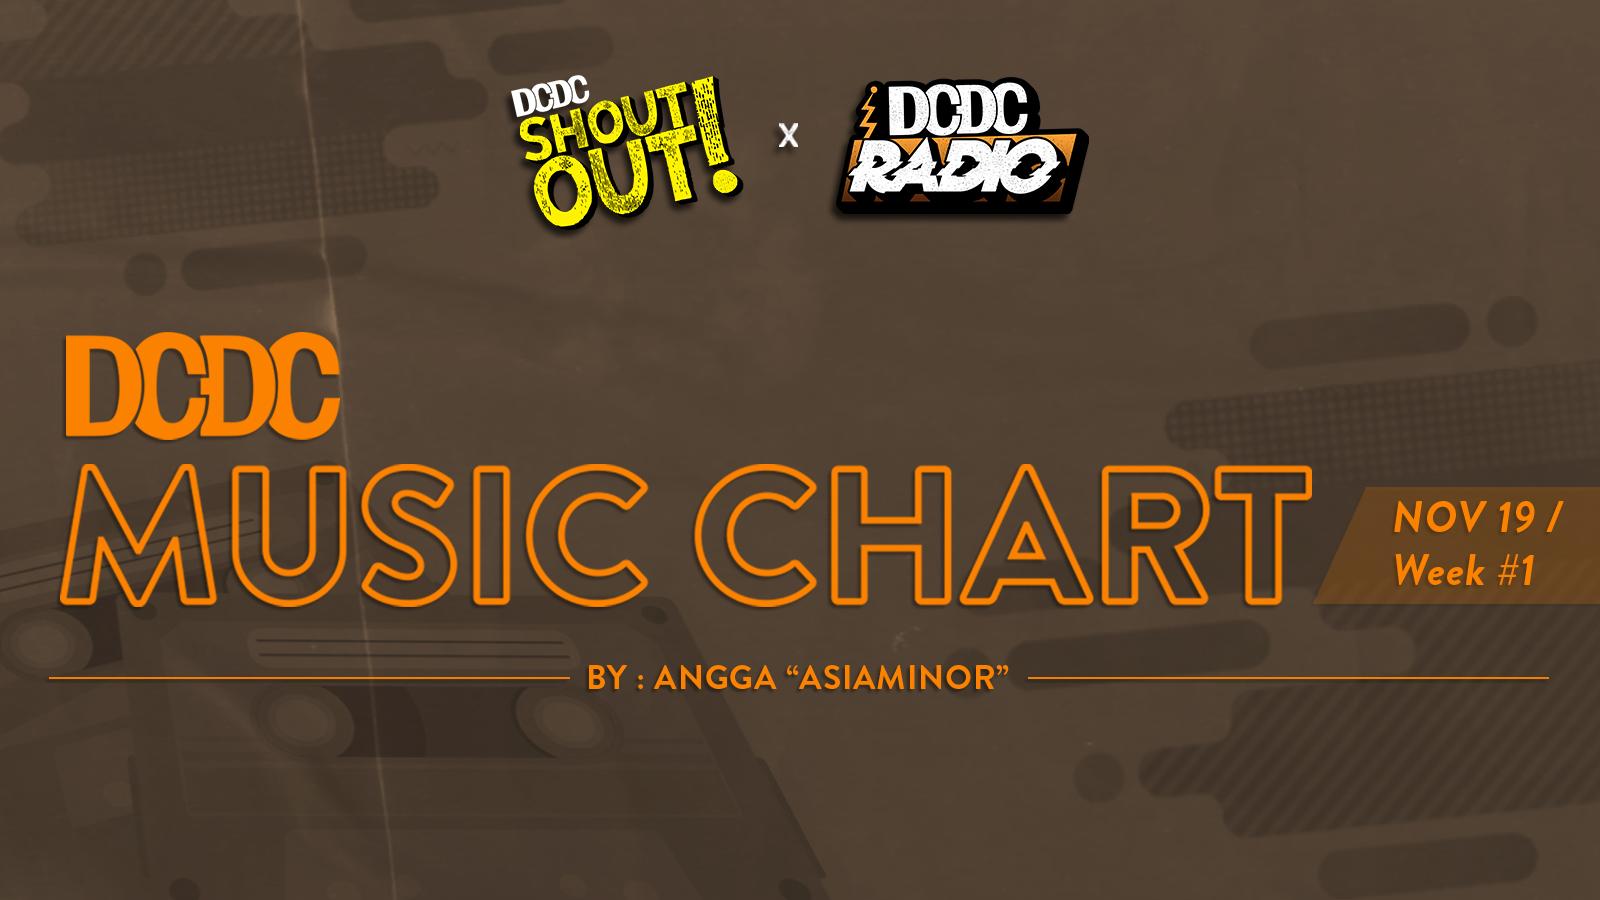 DCDC Music Chart - #1st Week of November 2019